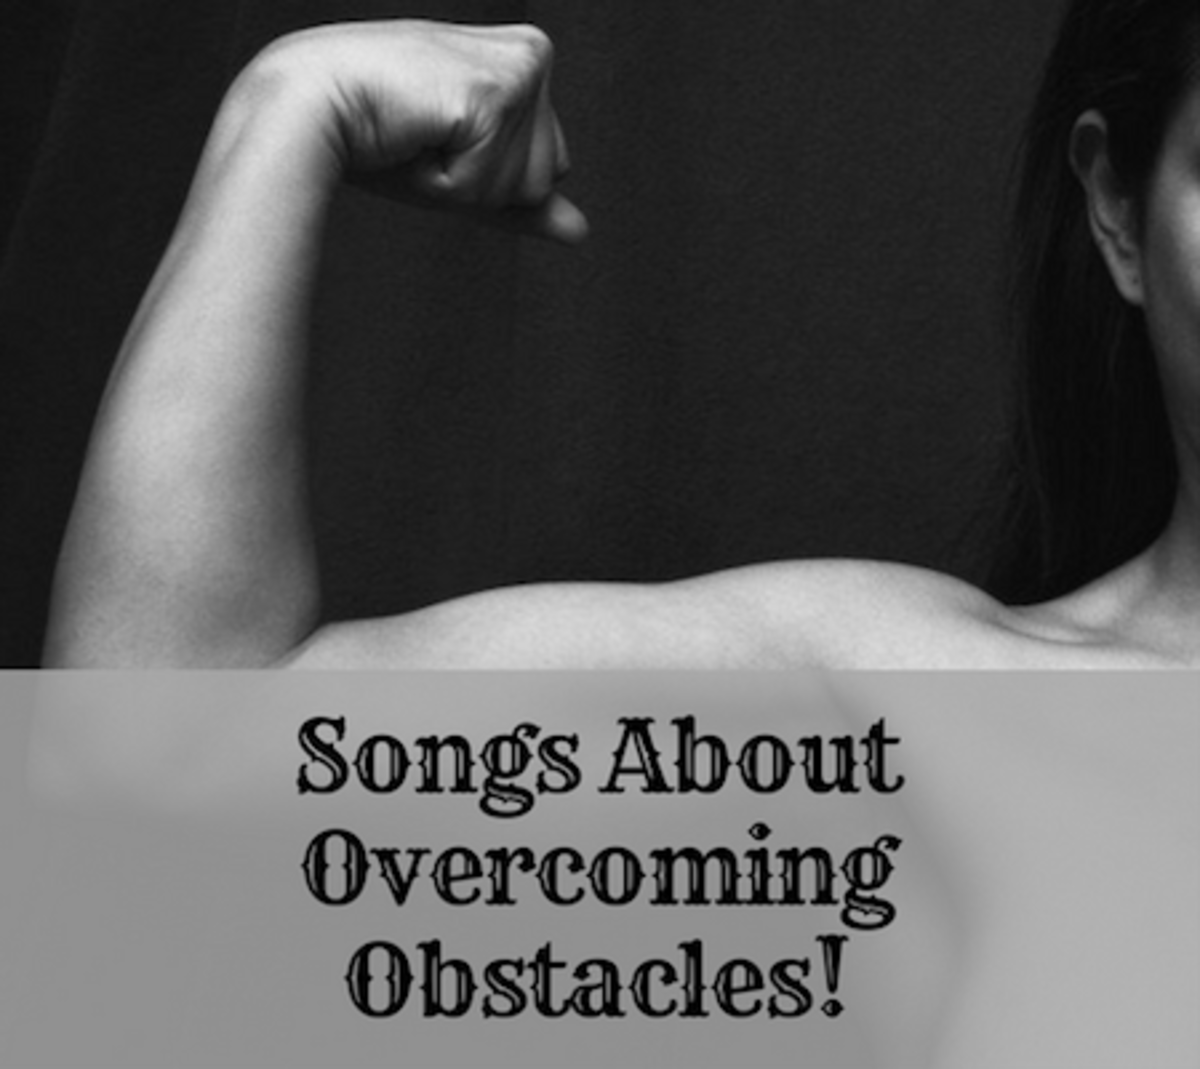 51 Songs About Overcoming Obstacles, Adversity, Hard Times, Challenges, and Not Giving Up